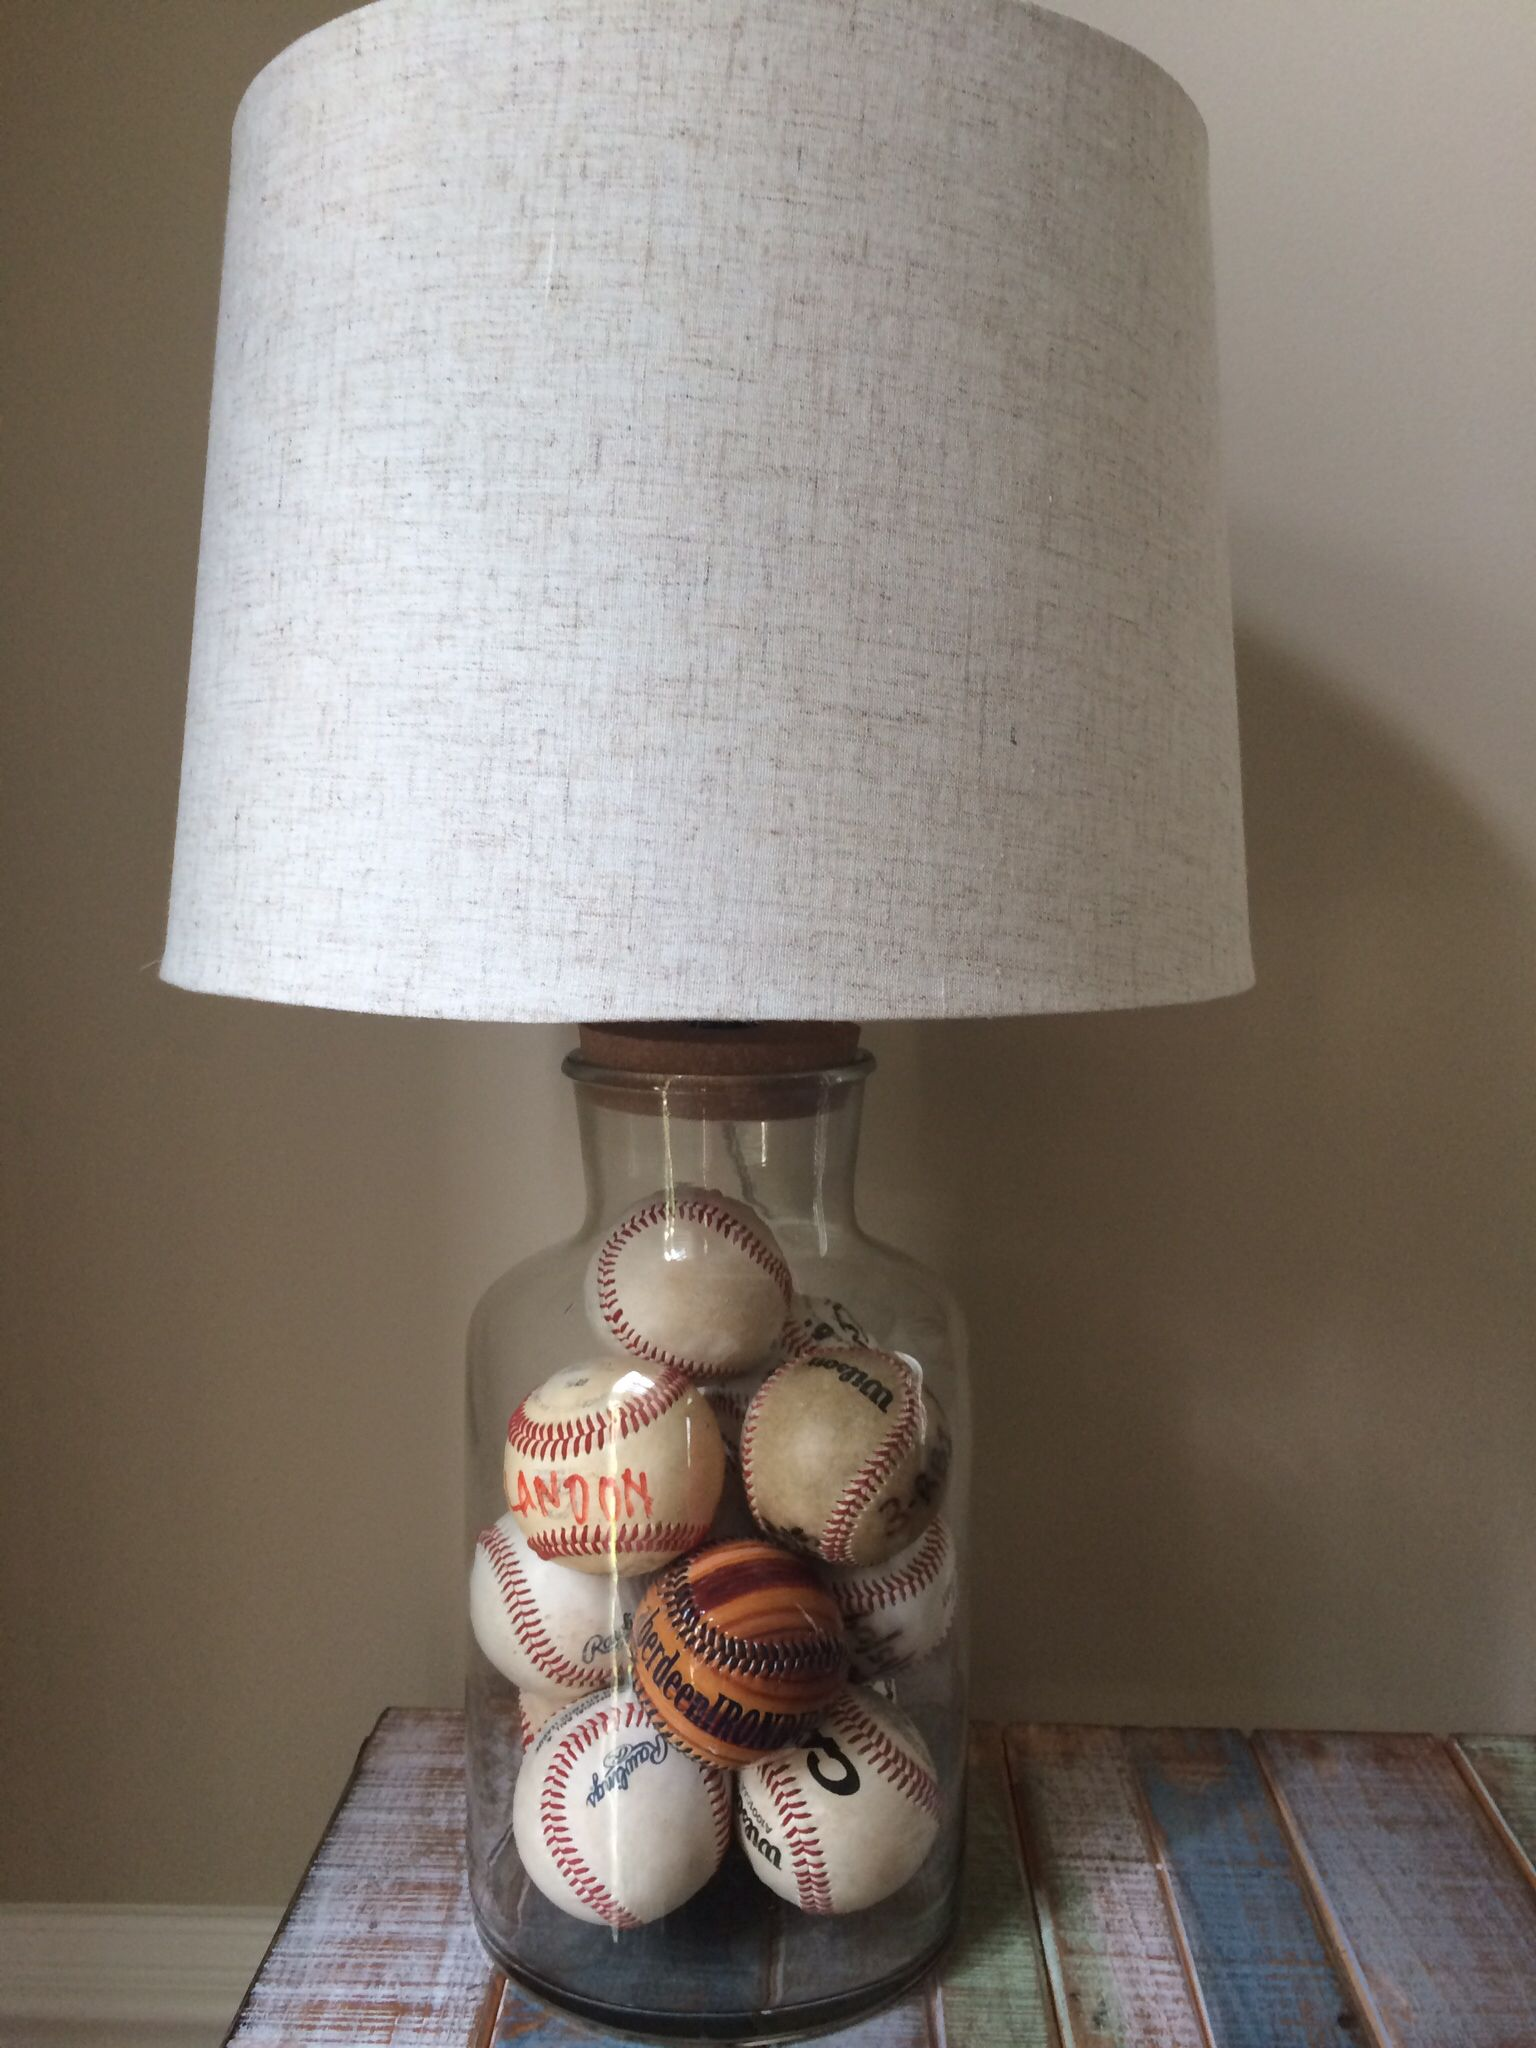 clear lamp base filled with baseballs lamp can be found at